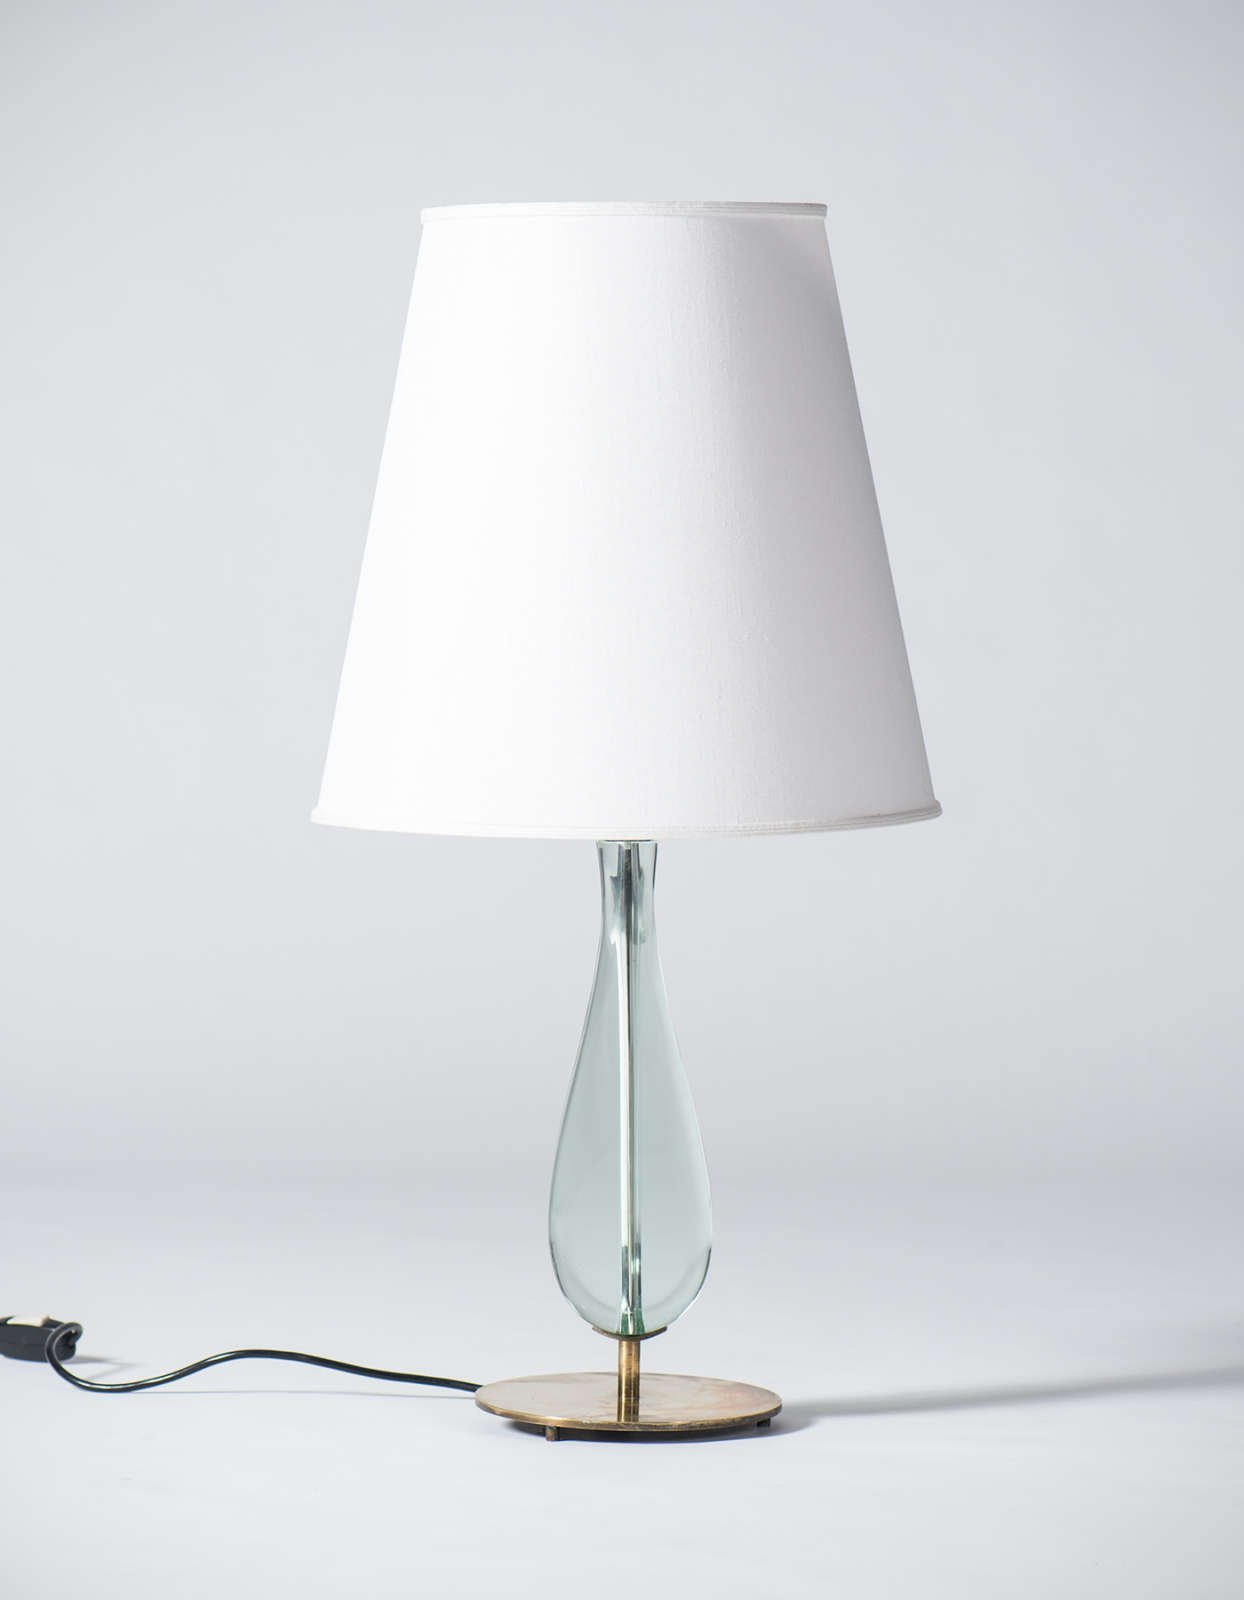 Max Ingrand |  Table lamp model 2206